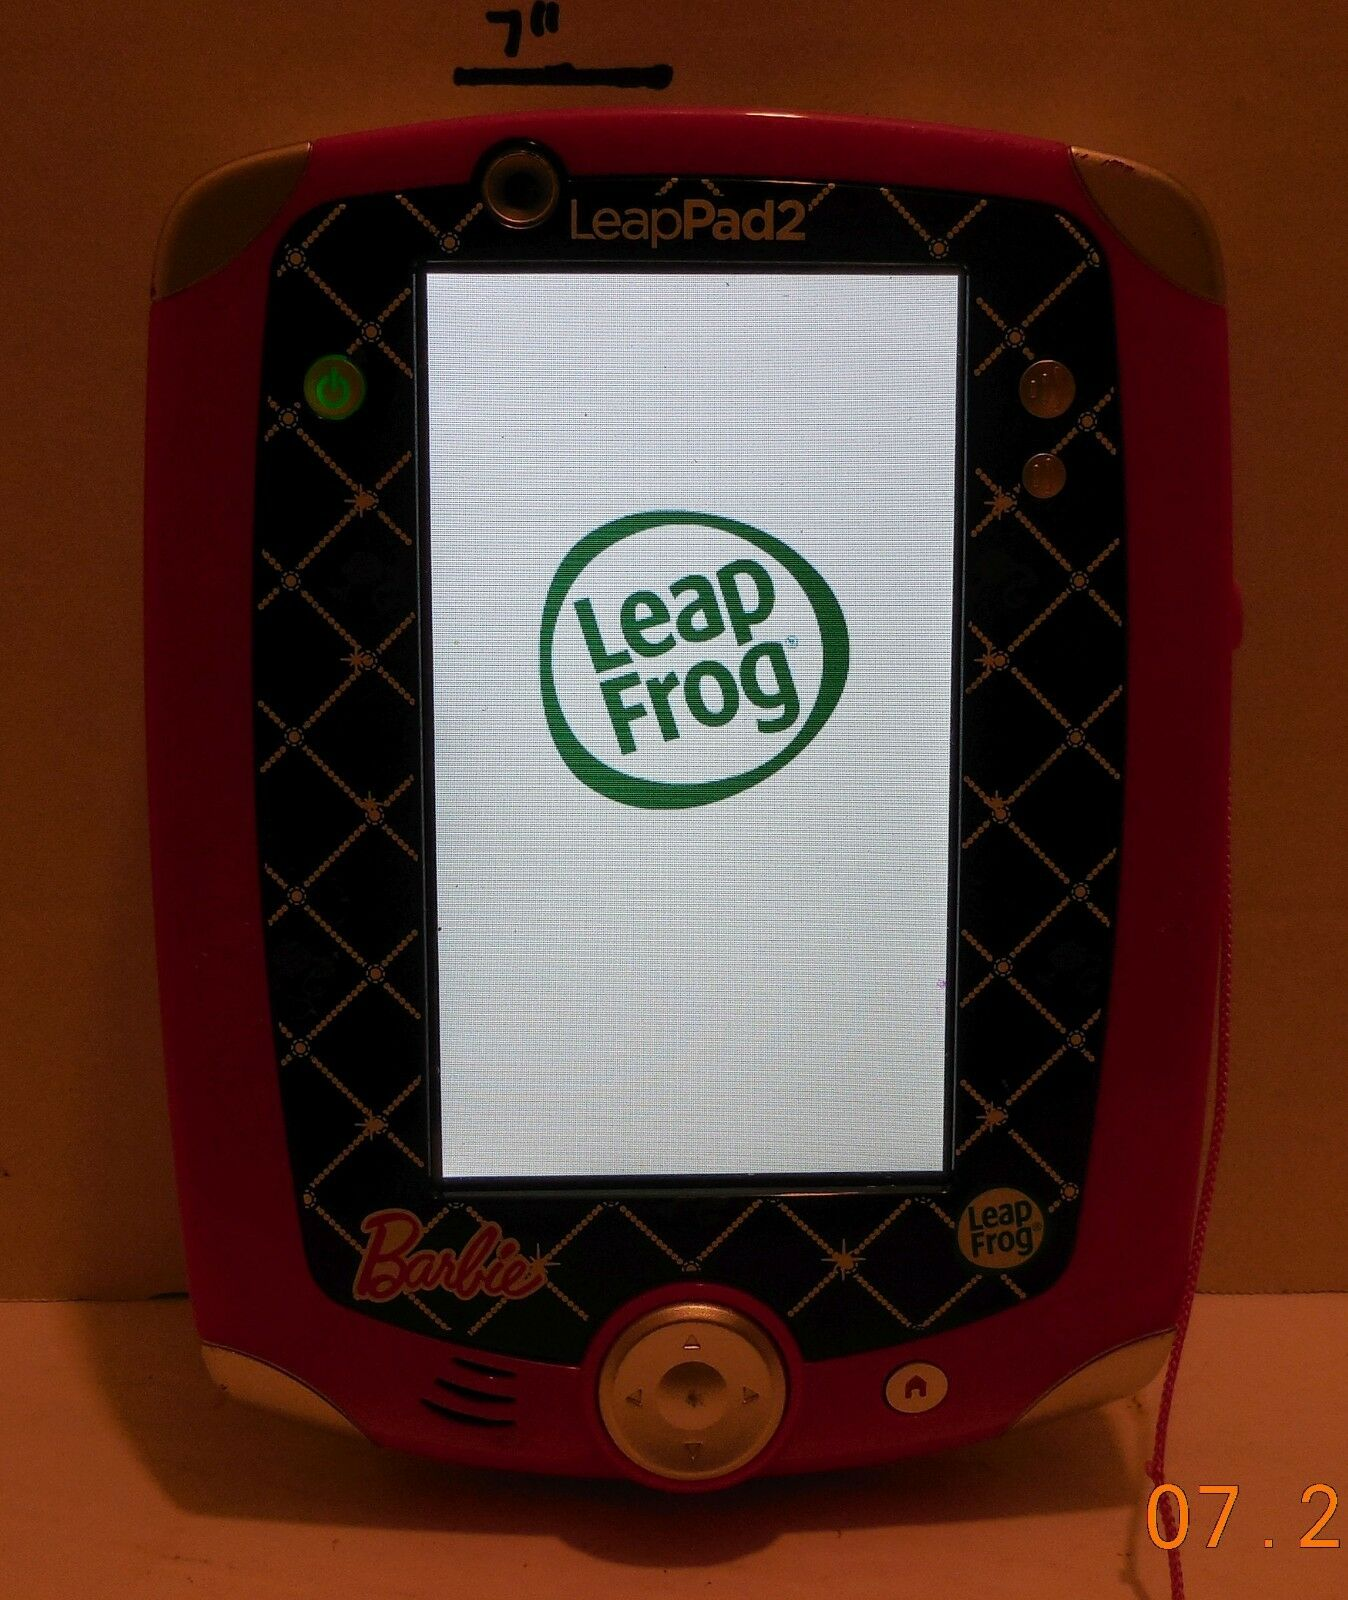 Barbie Leapfrog Leappad 2 Explorer Kids Tablet Game System Rare VHTF Educational